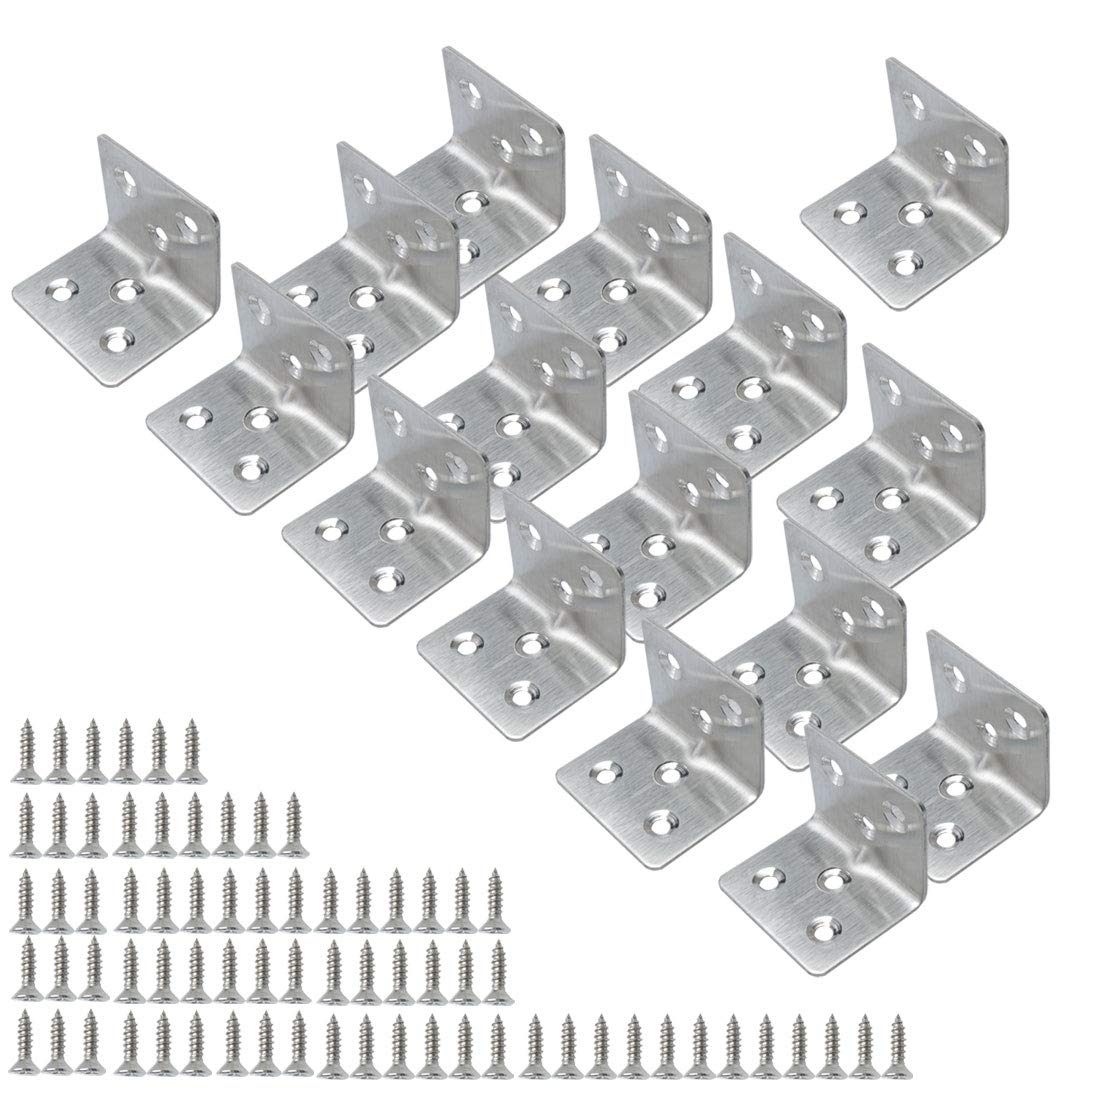 uxcell® 16pcs Angle Bracket Stainless Steel 40x40mm Corner Connection Fastener L Shaped Right Angle Bracket Protector Shelf Support with Screws for Furniture